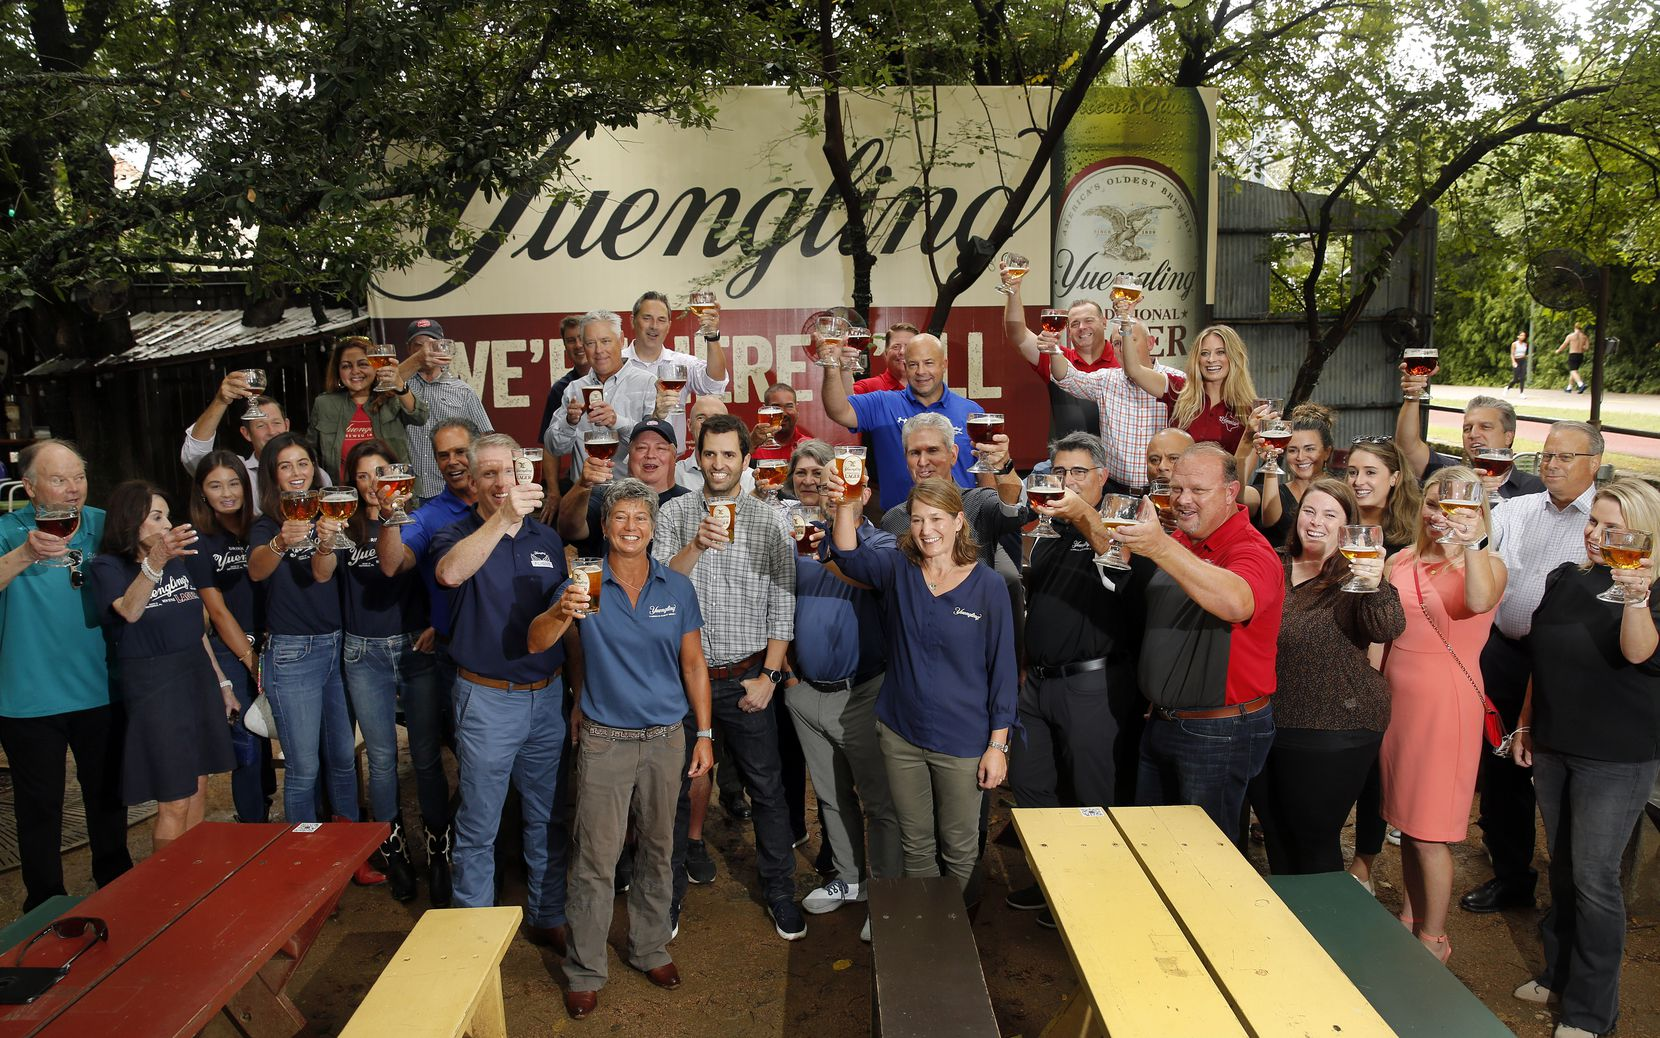 Yuengling, Molson Coors Beverage Company and Andrews Distributing employees gathered at Katy Trail Ice House in Dallas to celebrate the release of its beers in Texas. Its expansion into the Lone Star State is the biggest beer release we've seen in Texas in our lifetime, several industry people said.